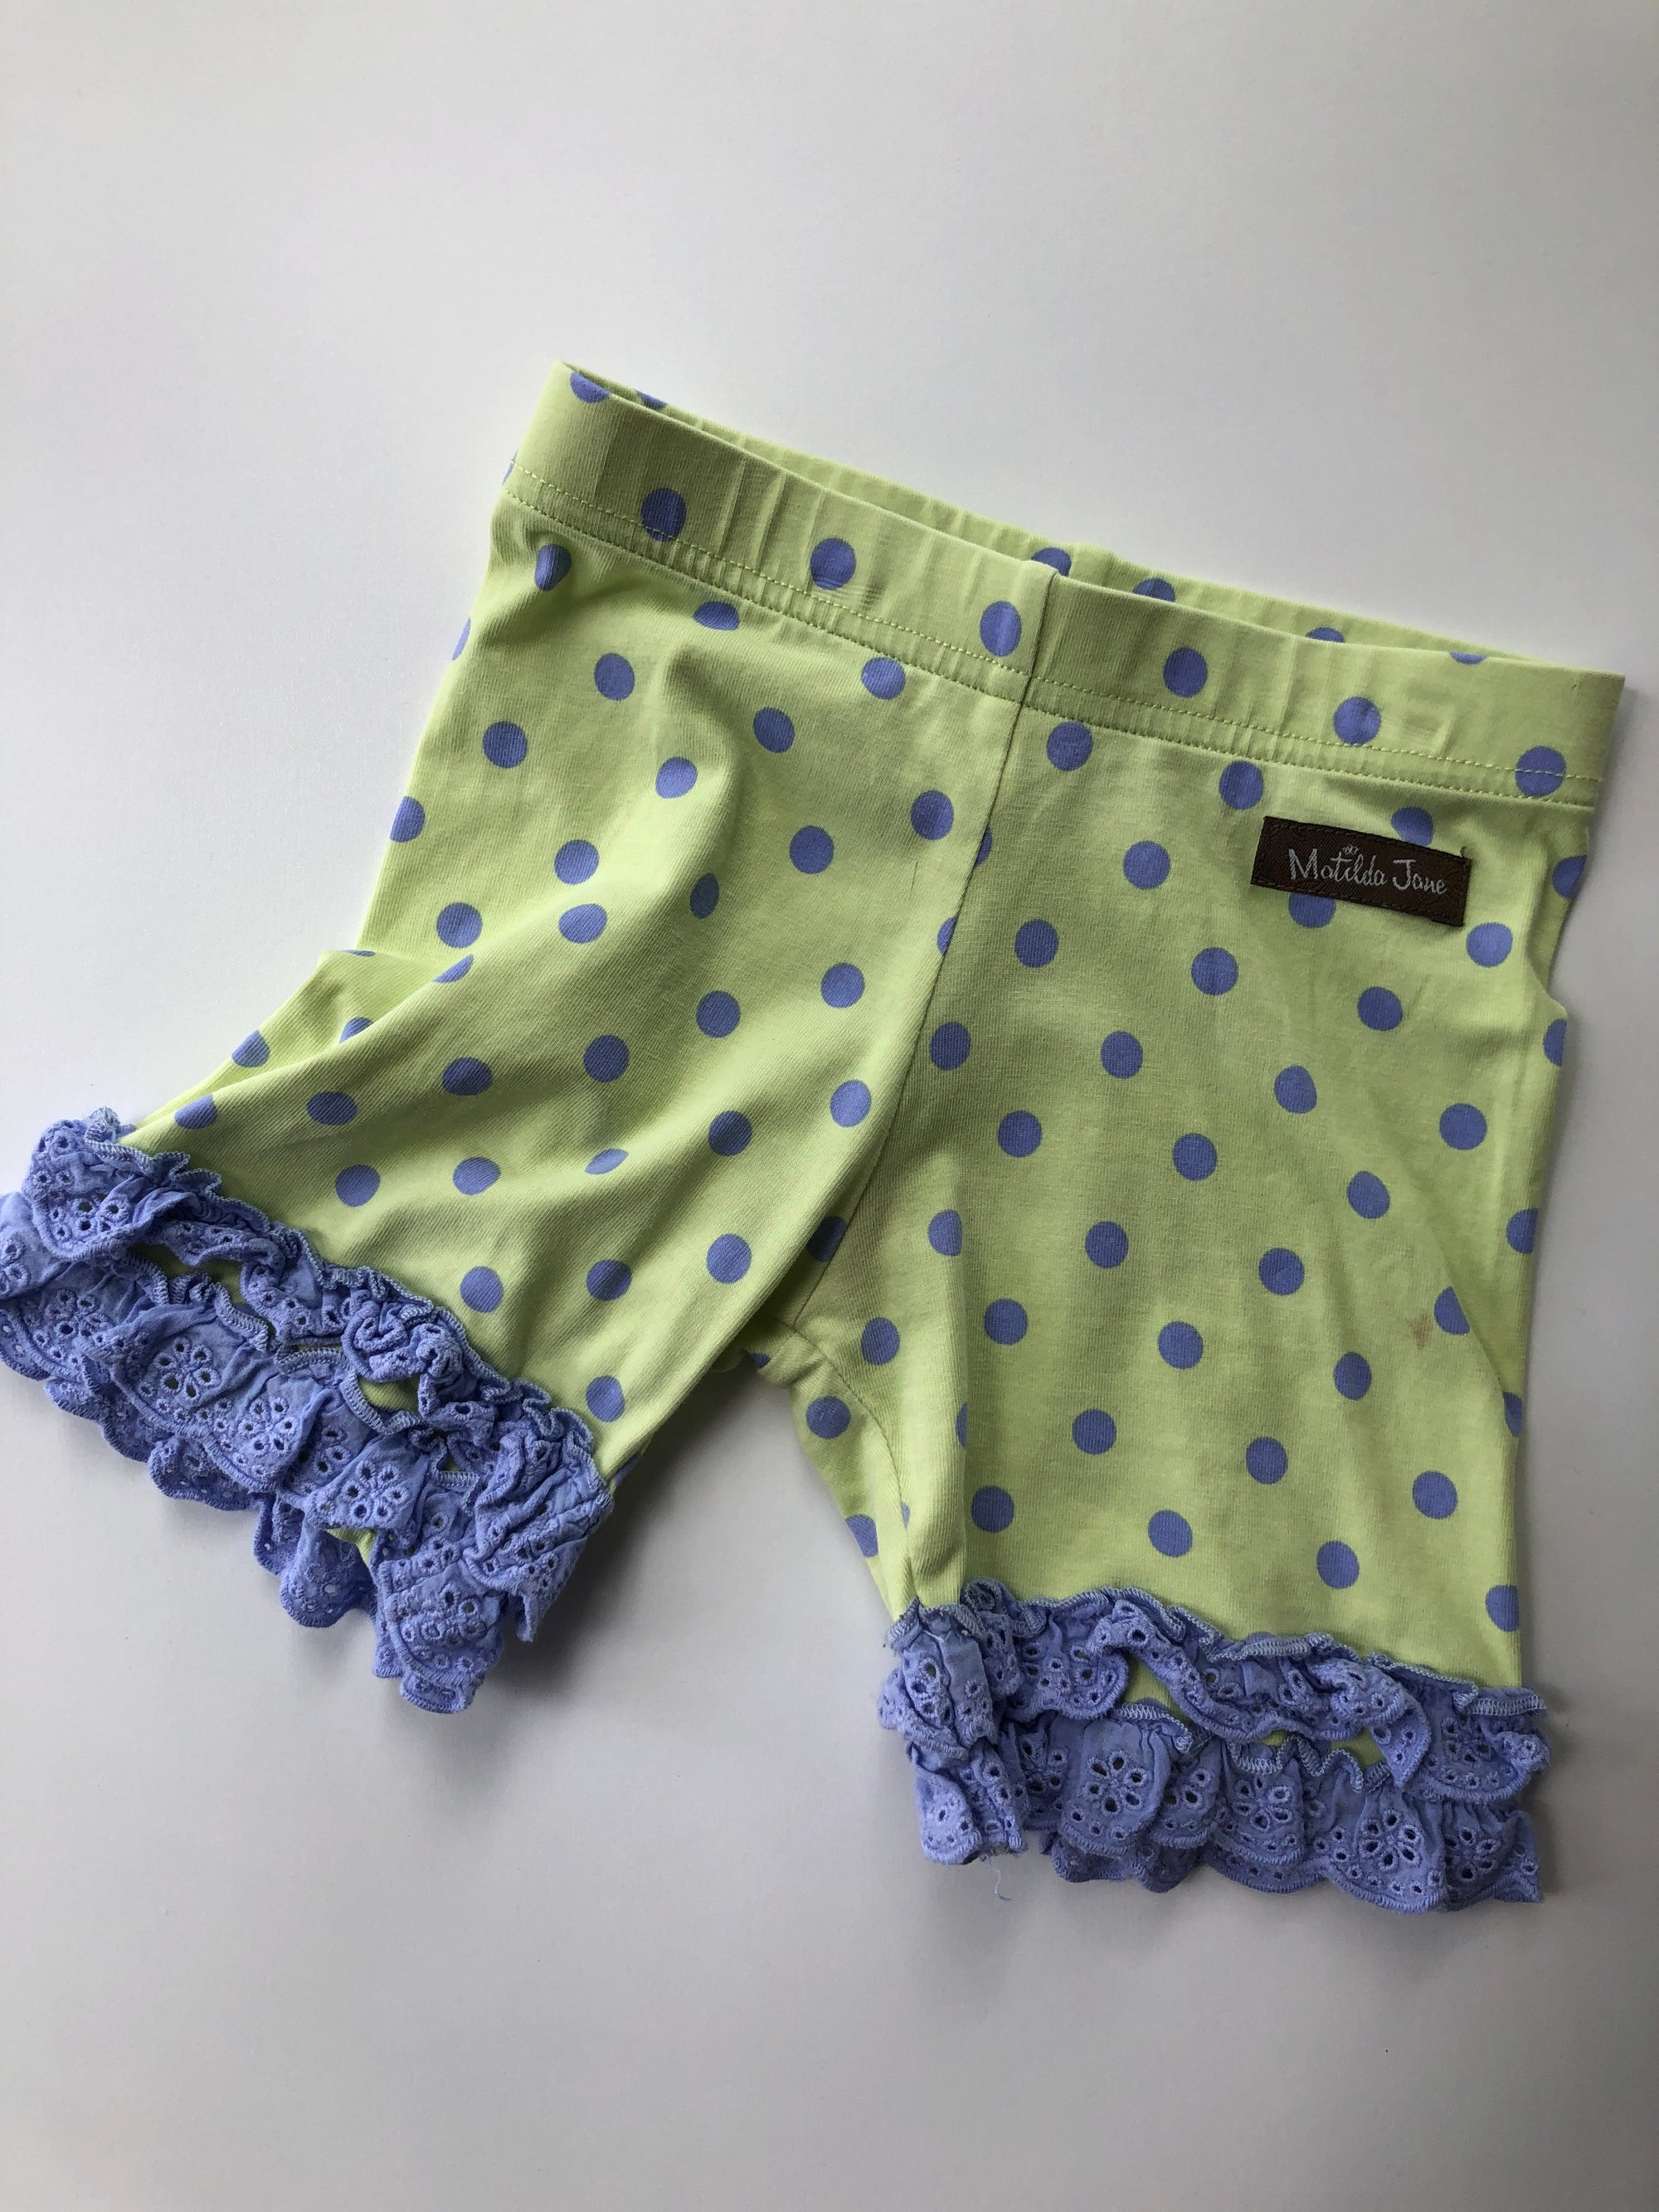 Resale 4T Matilda Jane Periwinkle Polka Dots on Lime Shorts